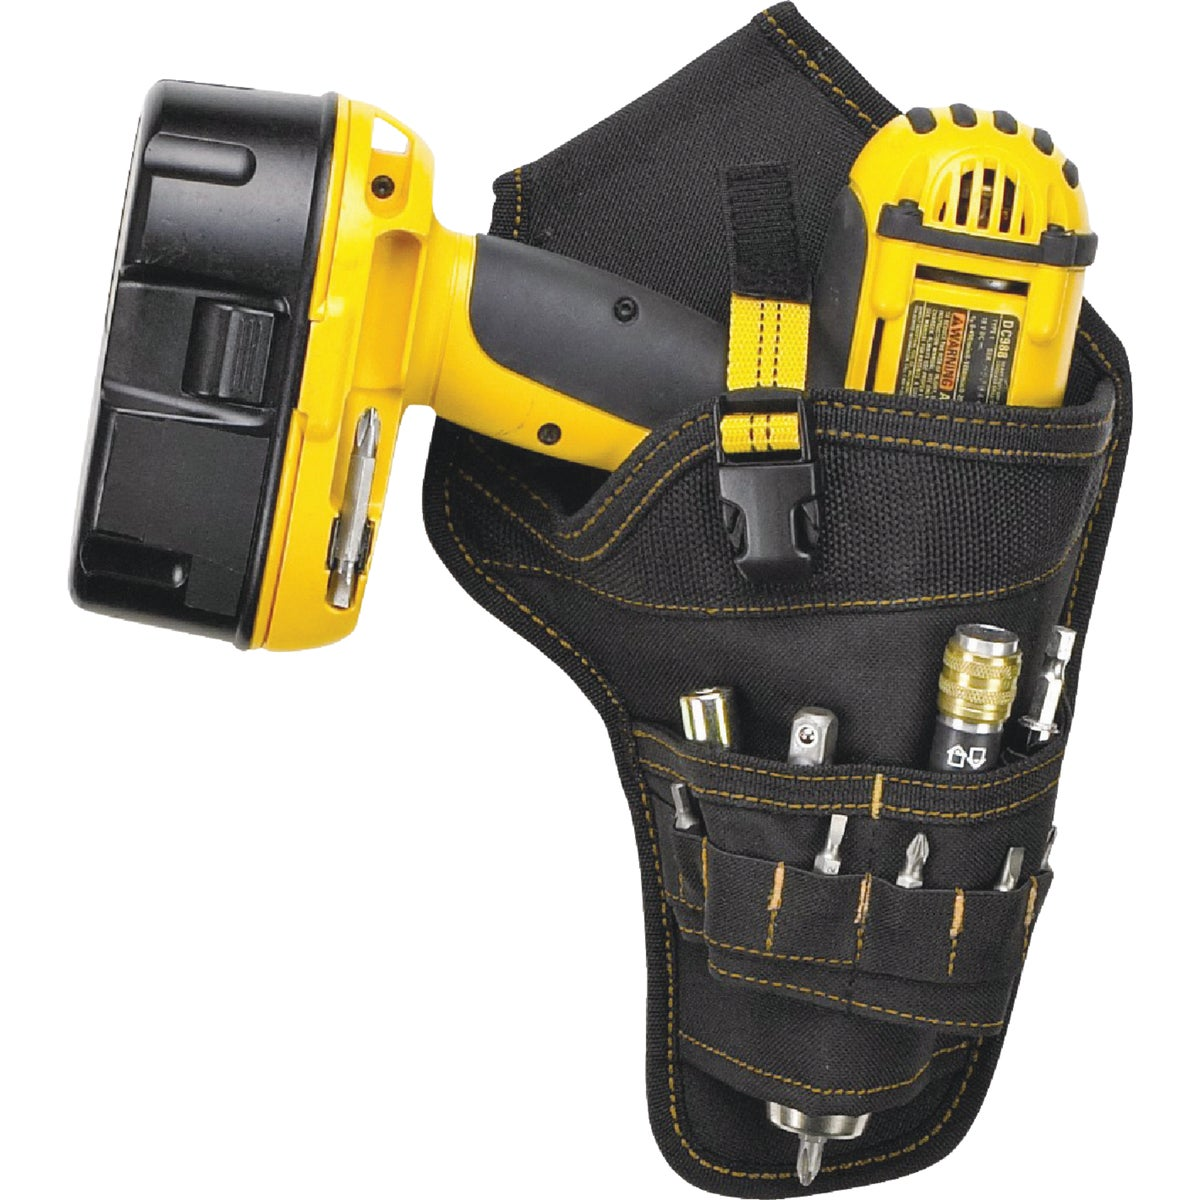 CORDLESS DRILL HOLSTER - 5023 by Custom Leathercraft